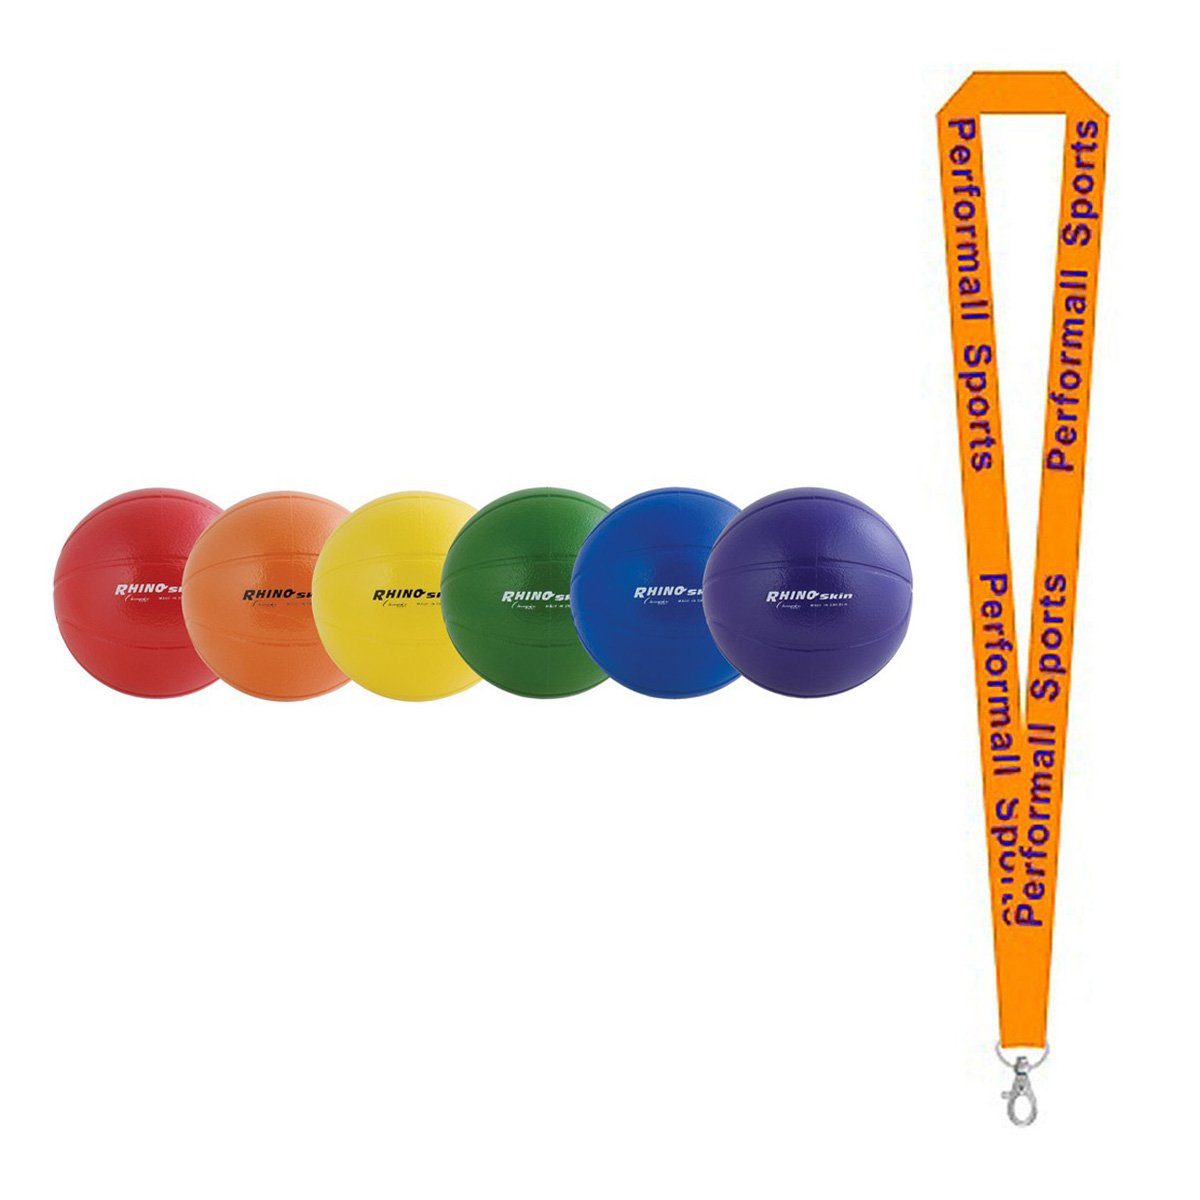 Champion Sports Rhino Skin Ball Set Assorted with 1 Performall Lanyard RS9SET-1P by Performall Sports Dodgeballs